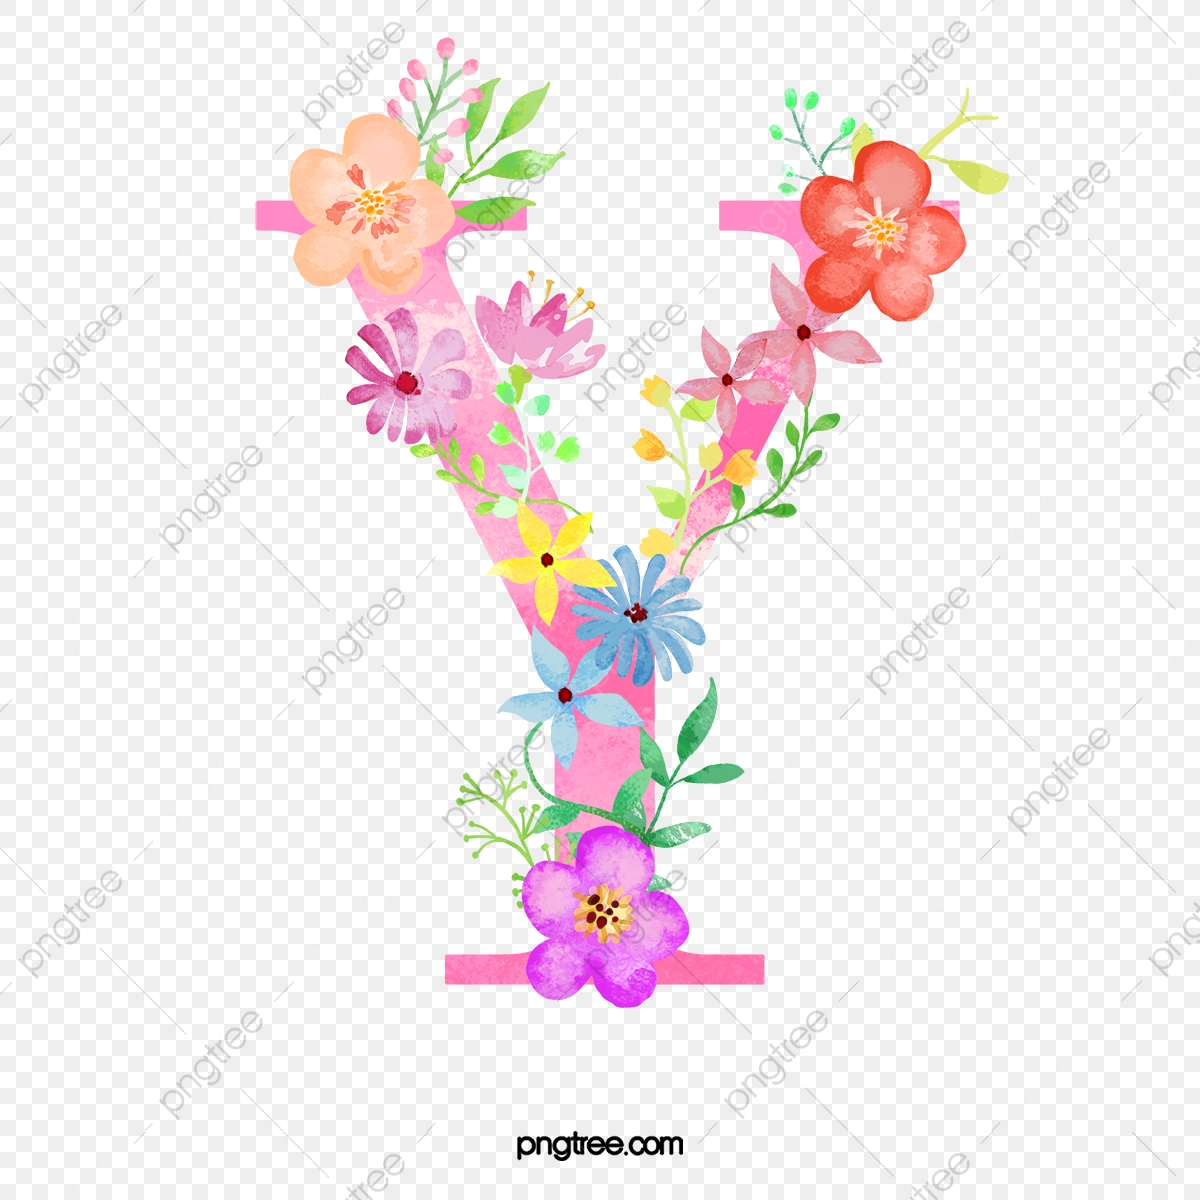 Flowers Letter Y Letter Flower Y Png Transparent Clipart Image And Psd File For Free Download